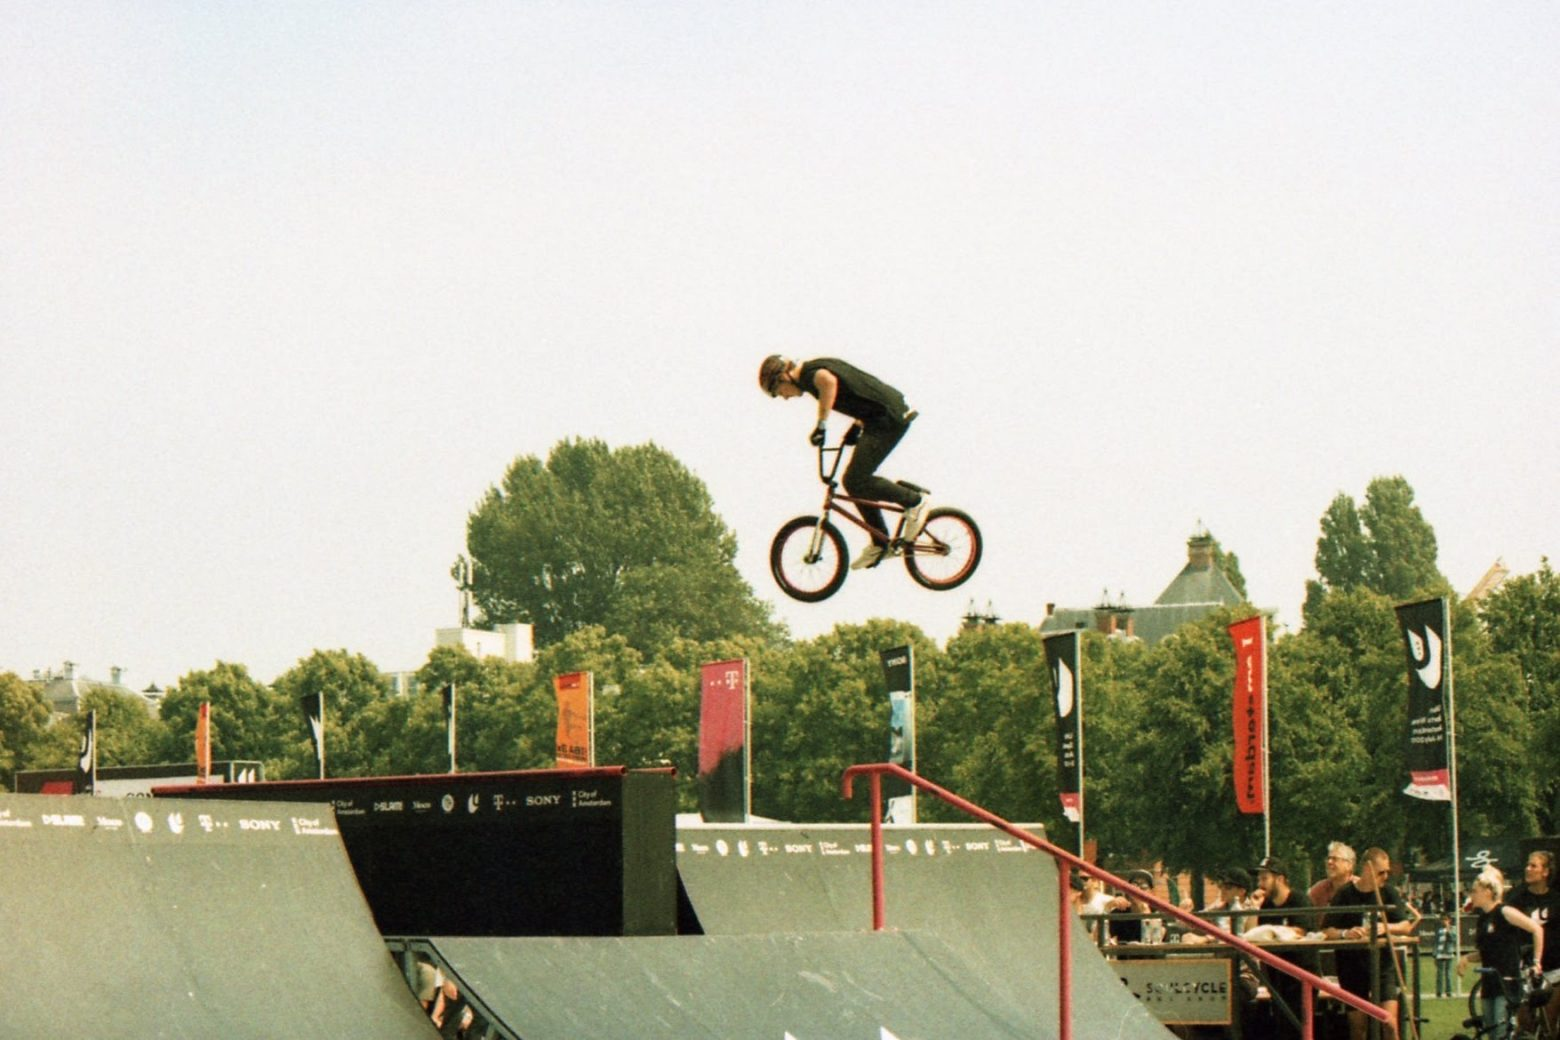 Urban Sports Week Amsterdam